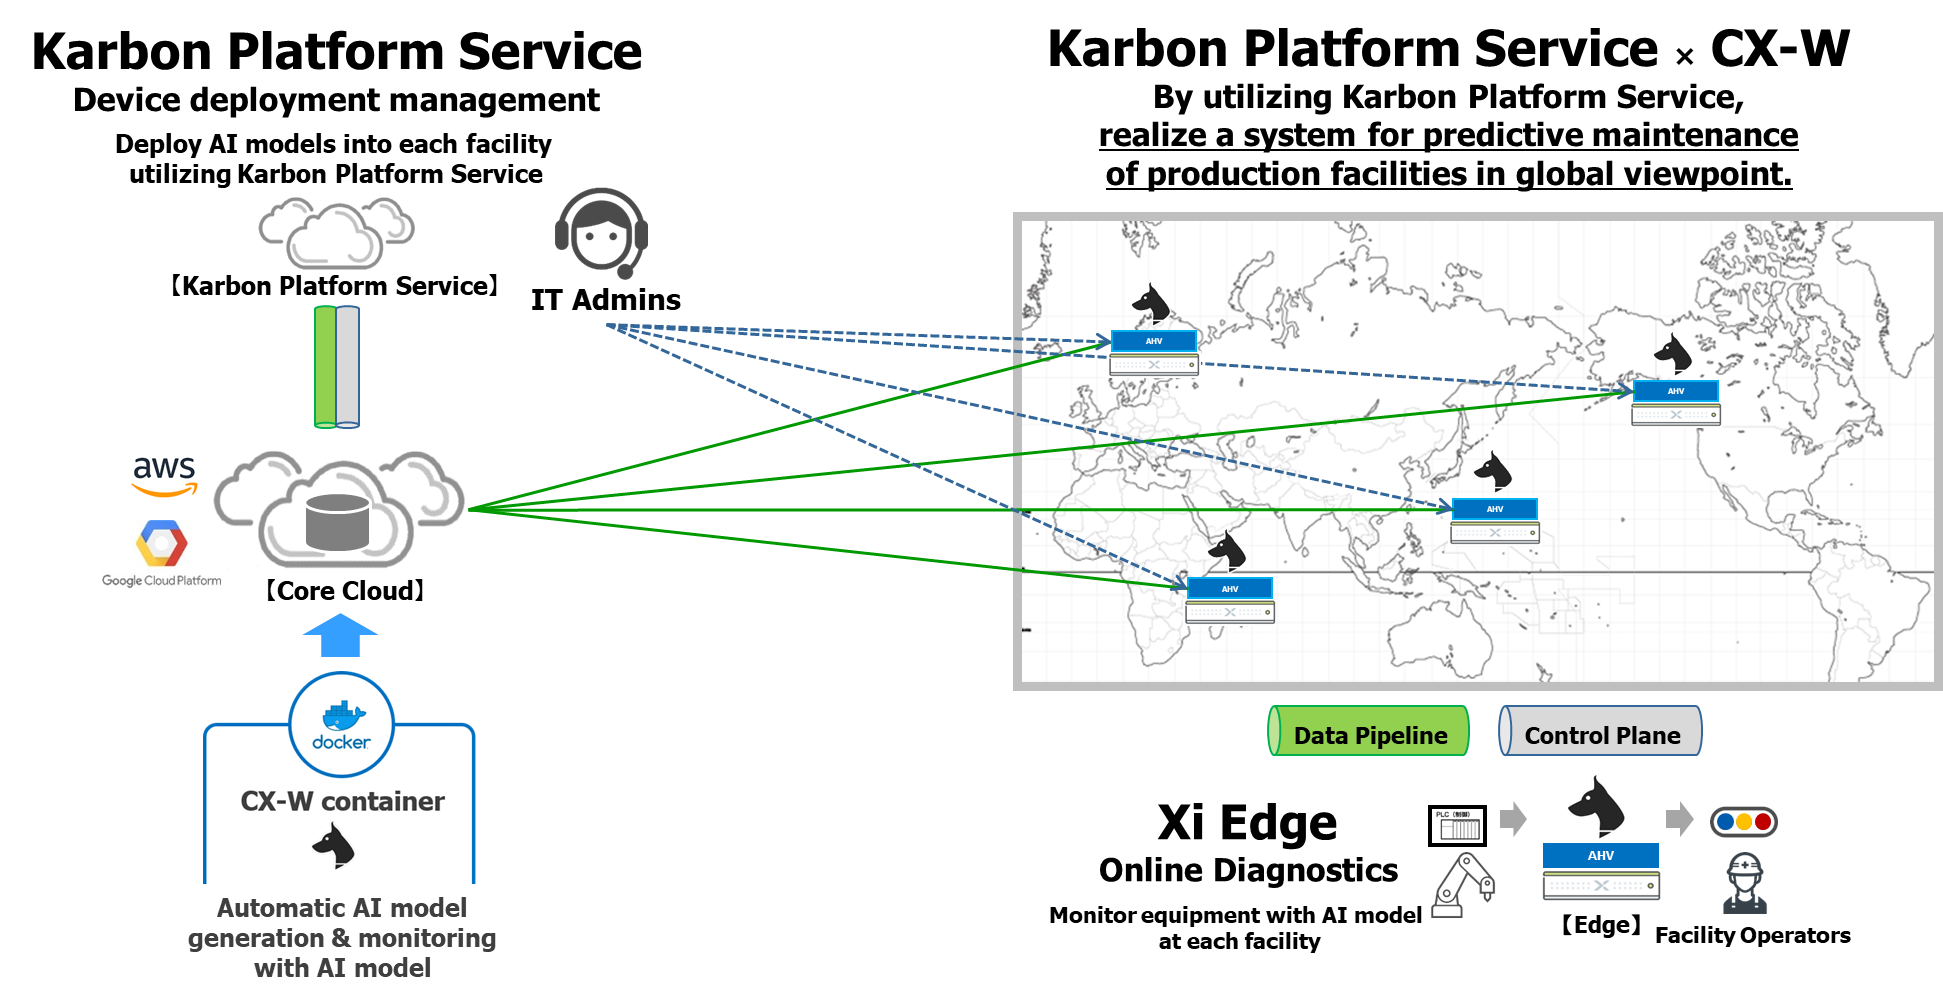 Single Pane Of Glass And Scalable Deployment